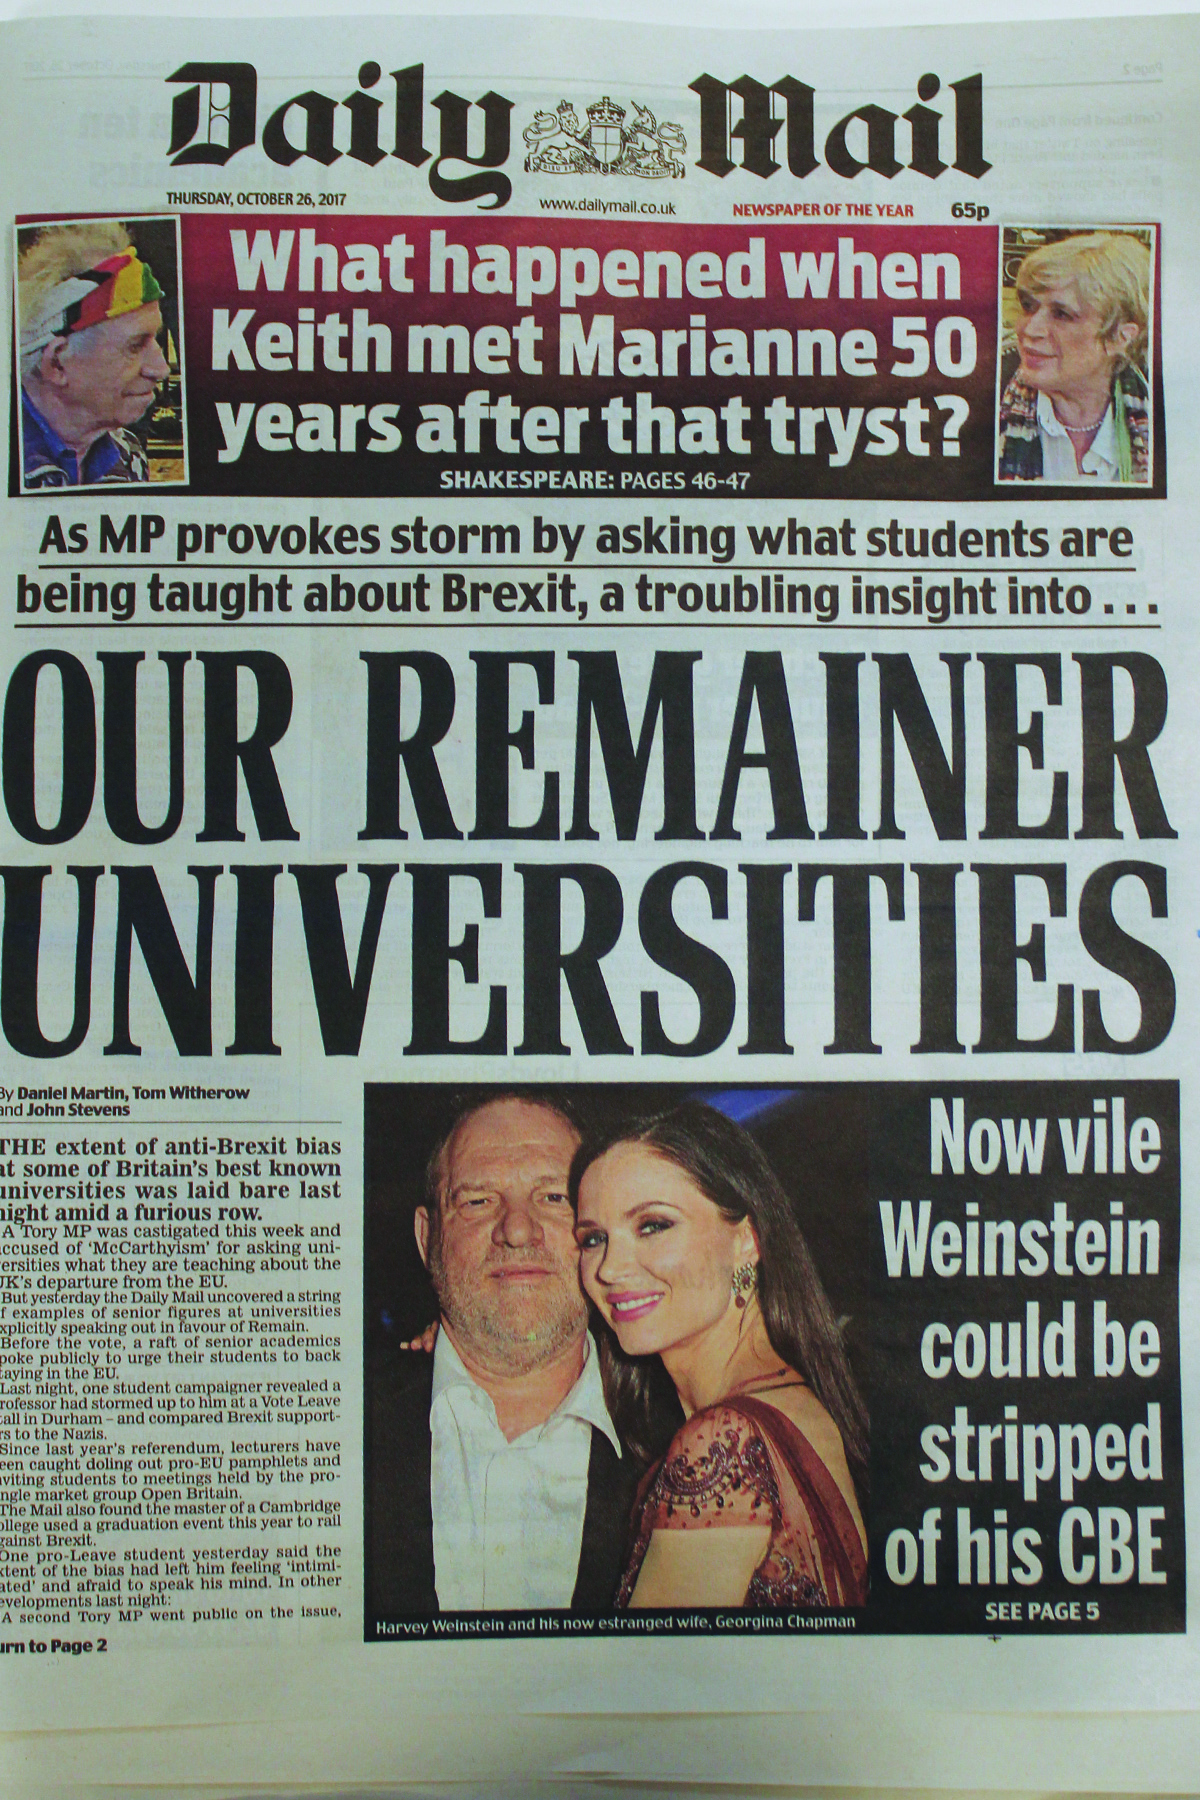 Oxford fights back against Daily Mail's anti-Brexit attacks